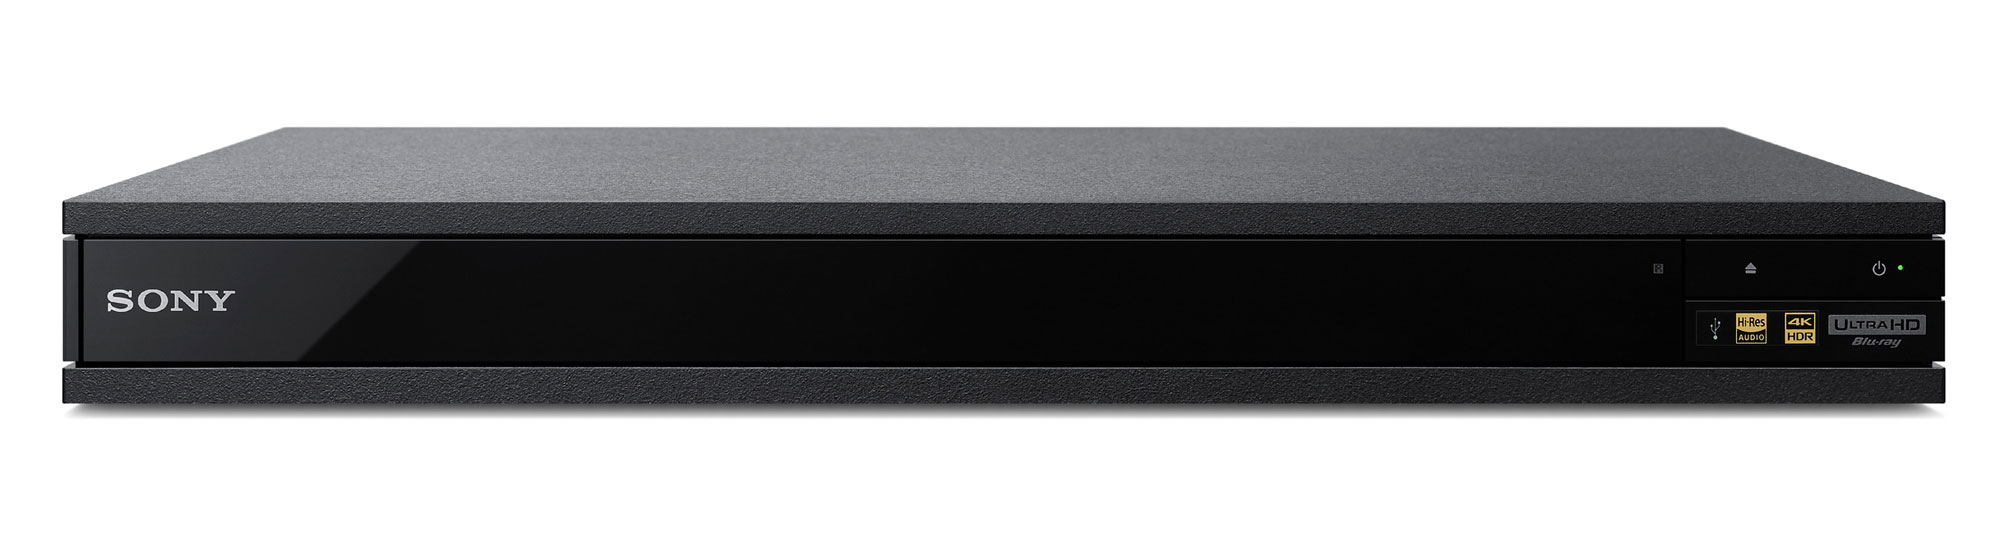 Sony's refreshed UBP-X800M2 UHD Blu-ray player has Dolby